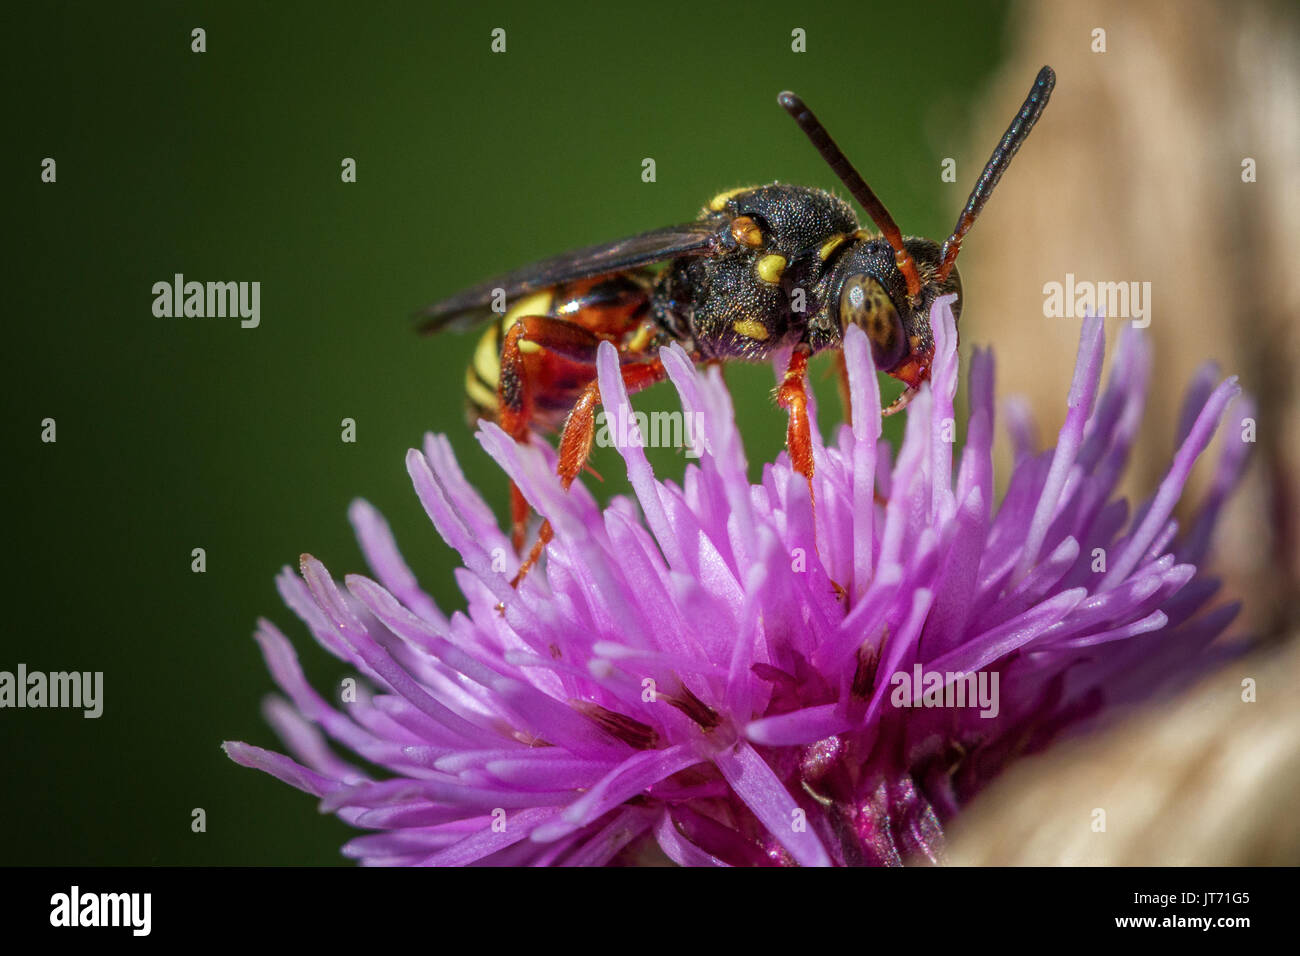 UK wildlife: Nomada rufipes, solitary cuckoo bee and cleptoparastic, Burley Moor, West Yorkshire, England - Stock Image